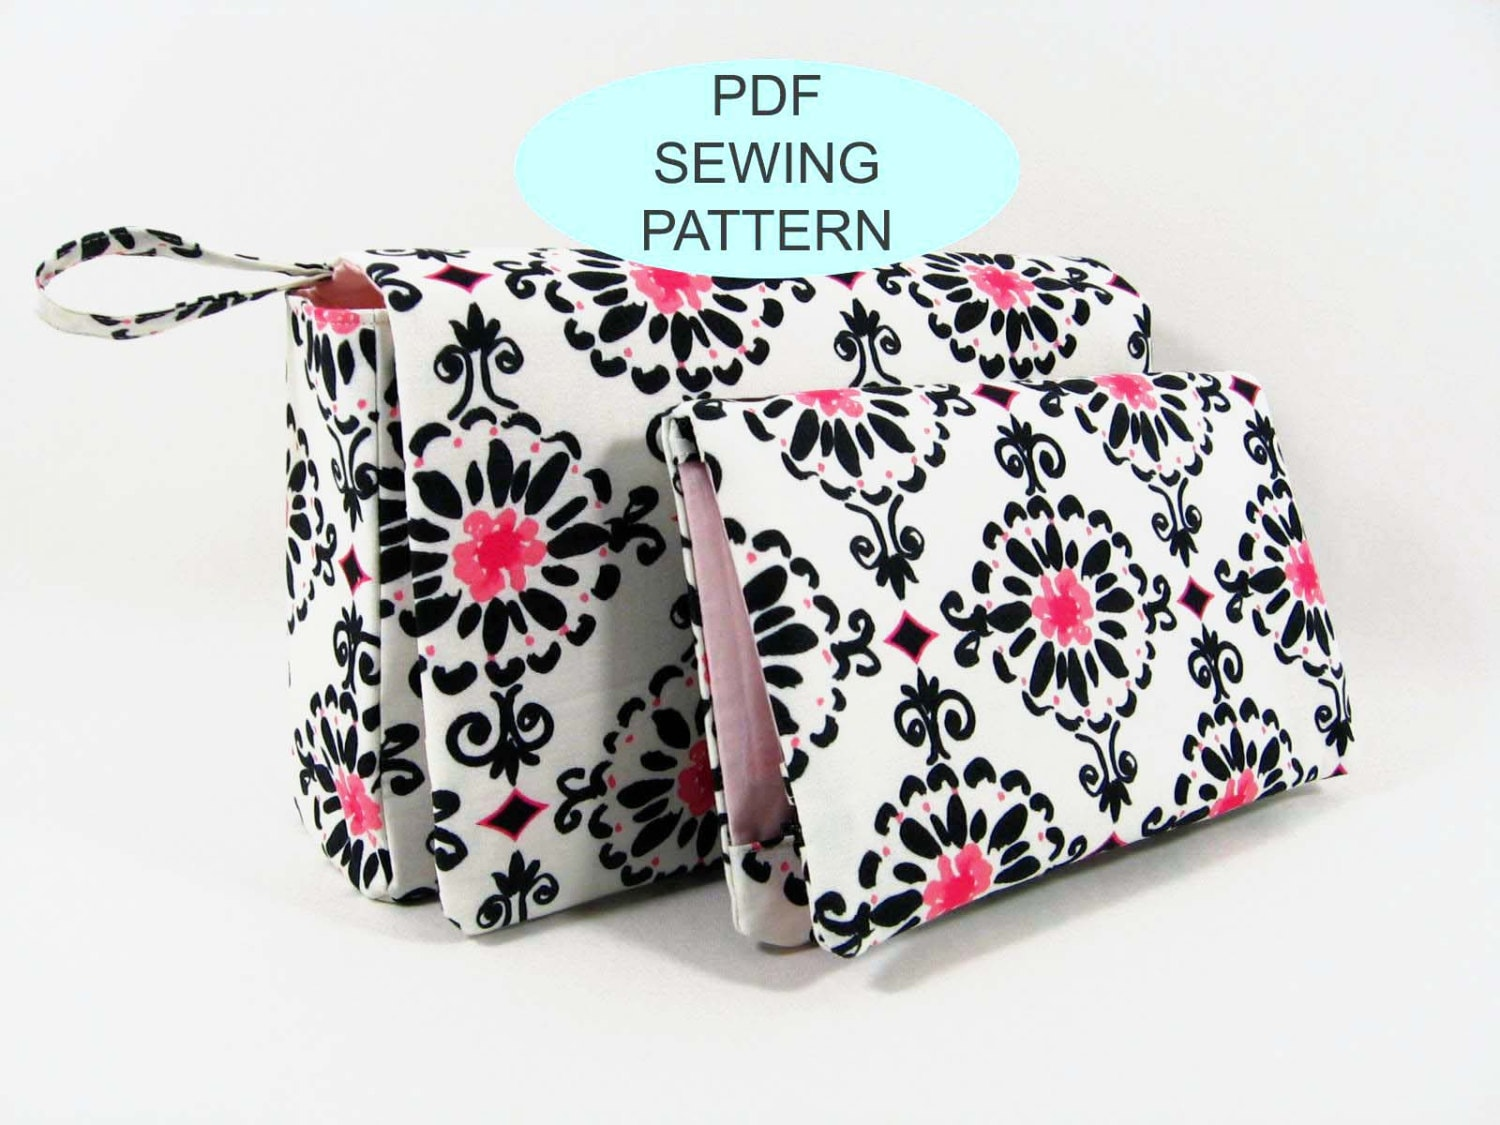 Pdf sewing tutorial and pattern instant download diy sewing zoom baditri Images